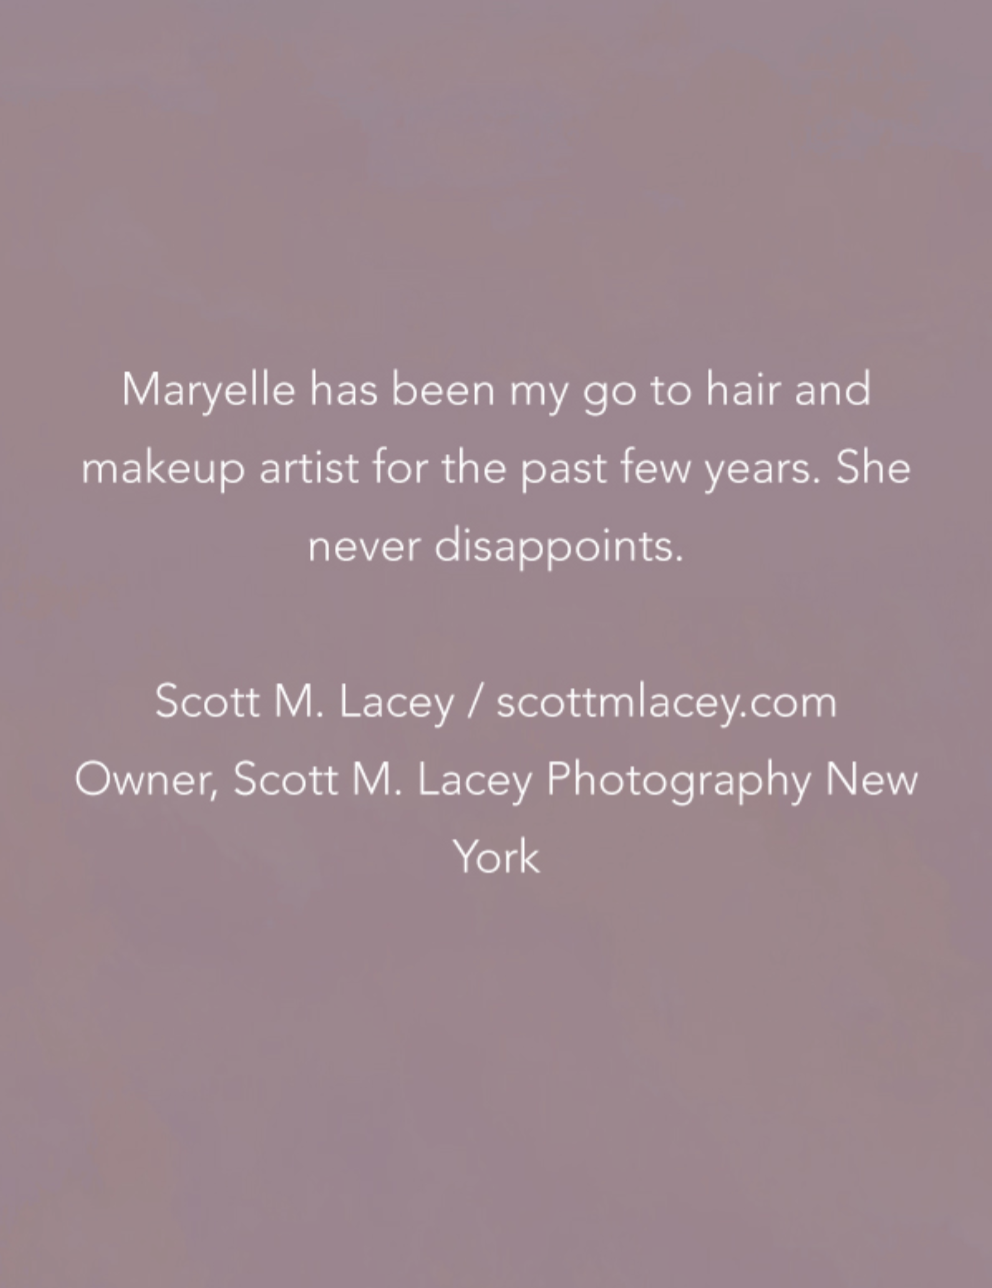 Testimonial from Scott M. Lacey Photography